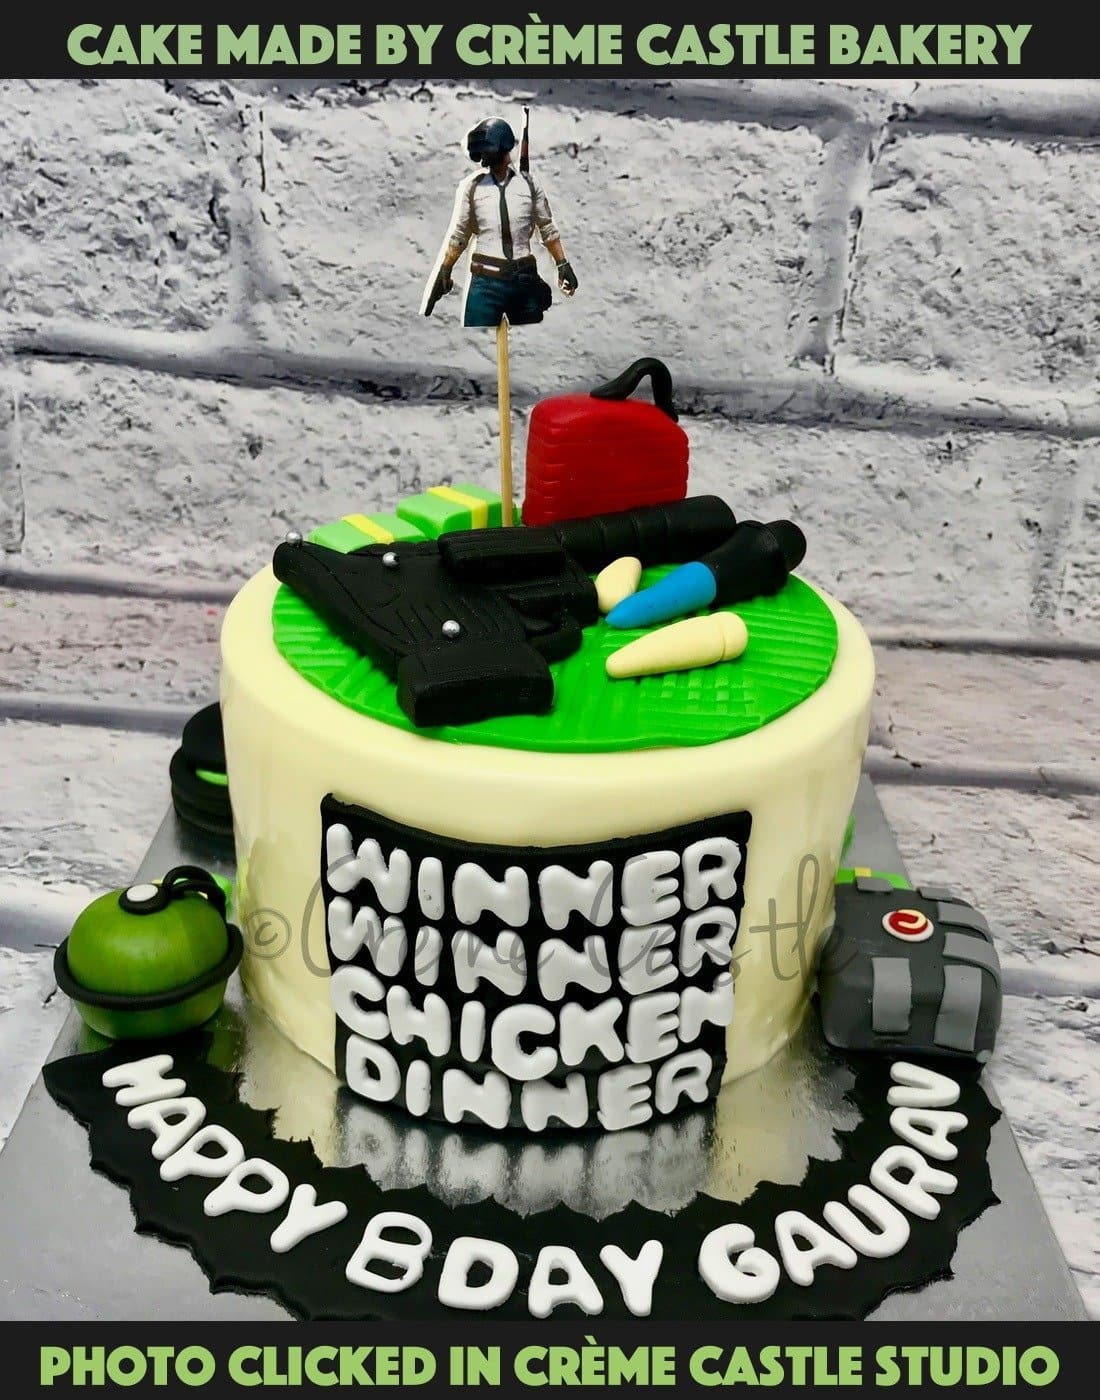 A Classic Pubg Theme Cake With Its Famous Elements On Top Of The Cake And Who Can Forget Winner Winner Chicken Dinner